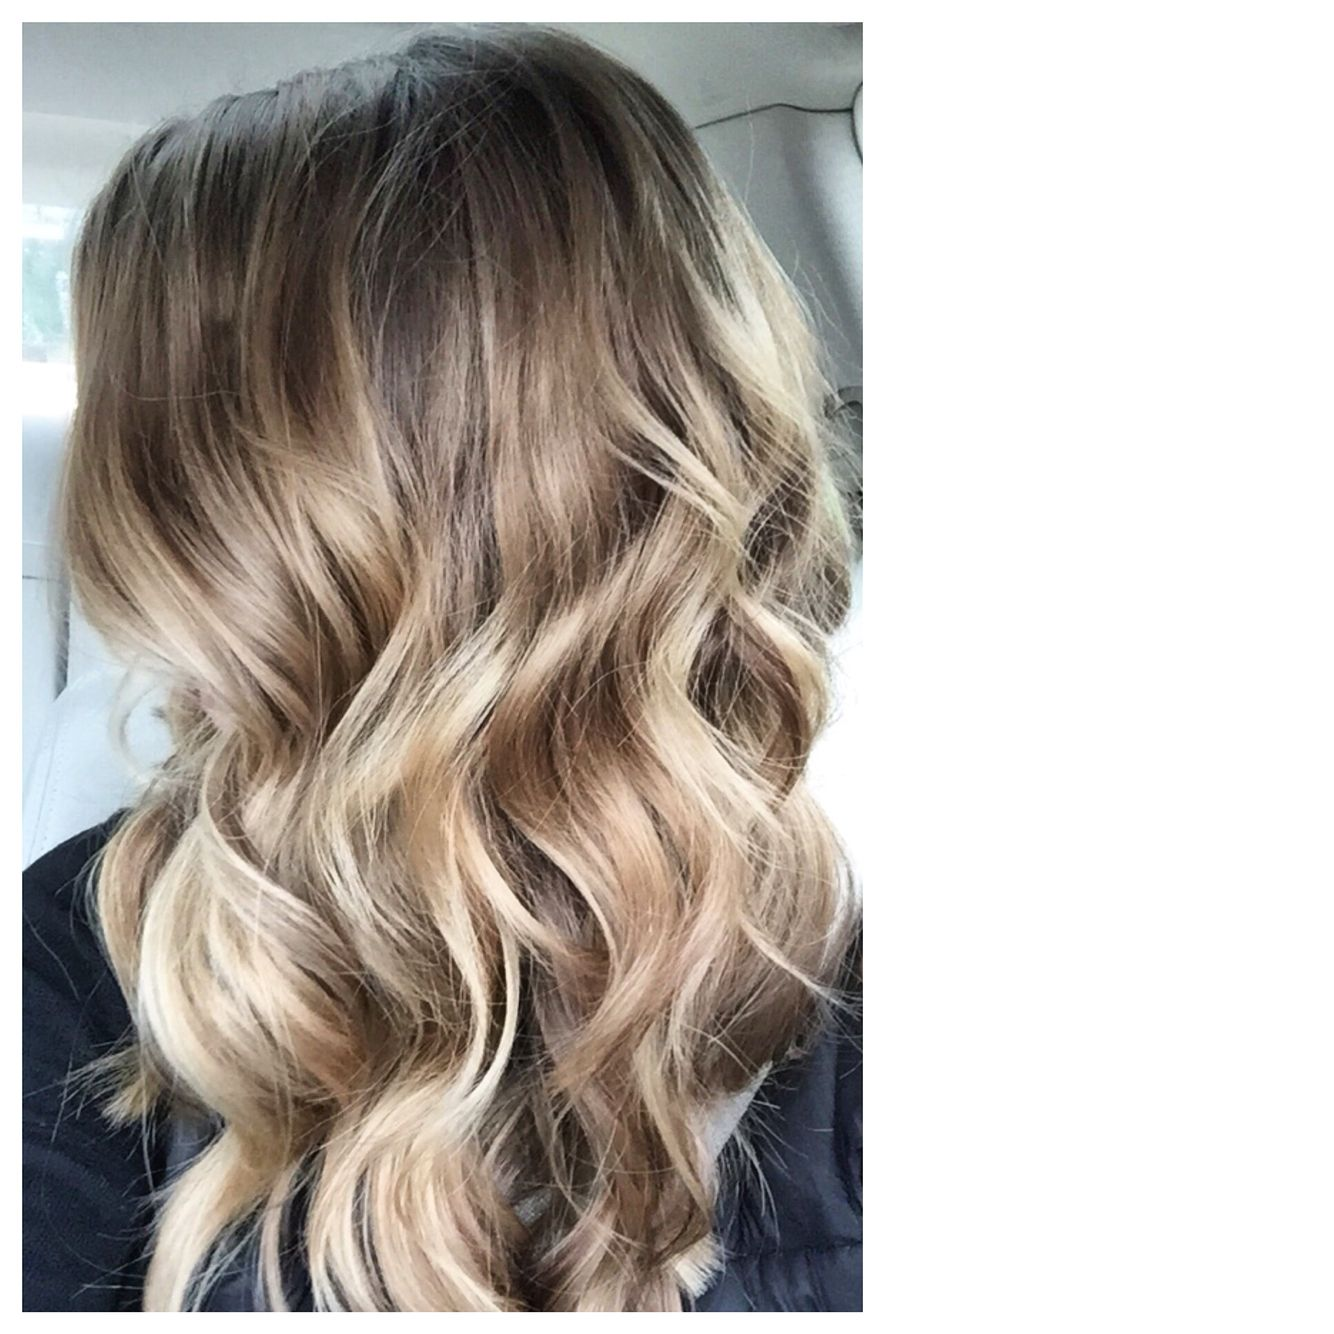 Balayage Style Color With S Me Copper And Blonde Mixed Into A